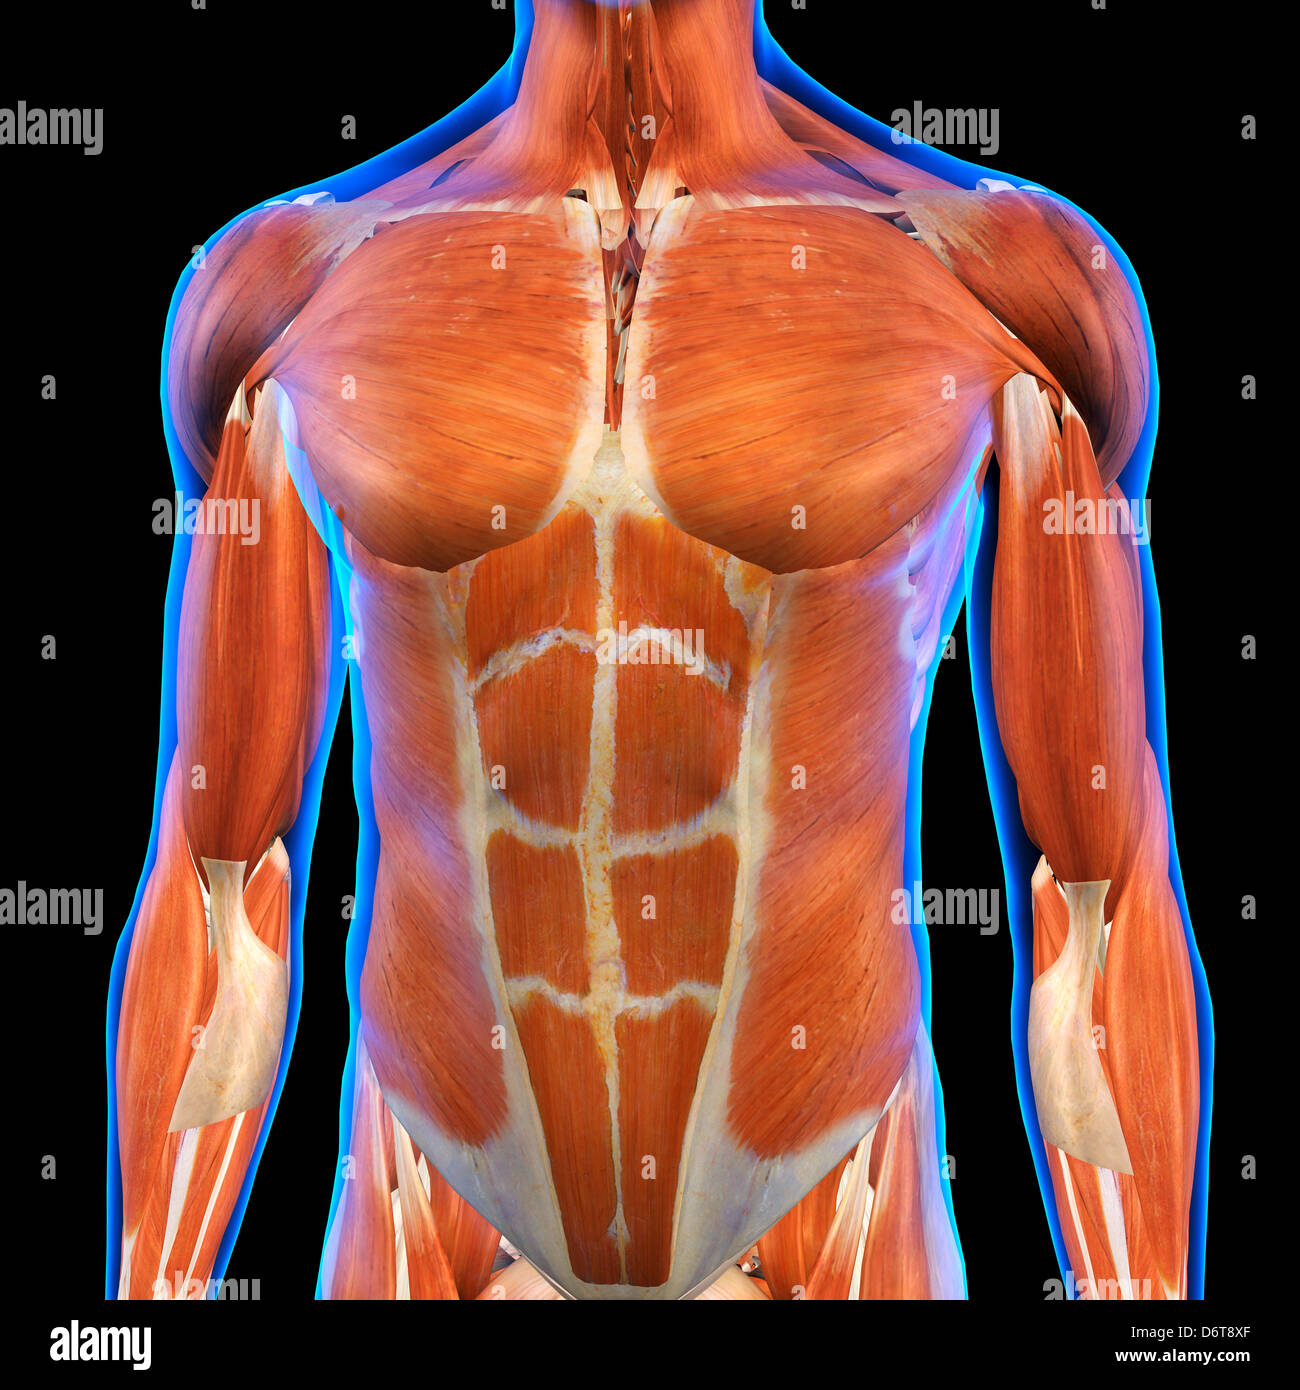 Male Chest Abdominal Muscles Anatomy in Blue X-Ray outline Full ...